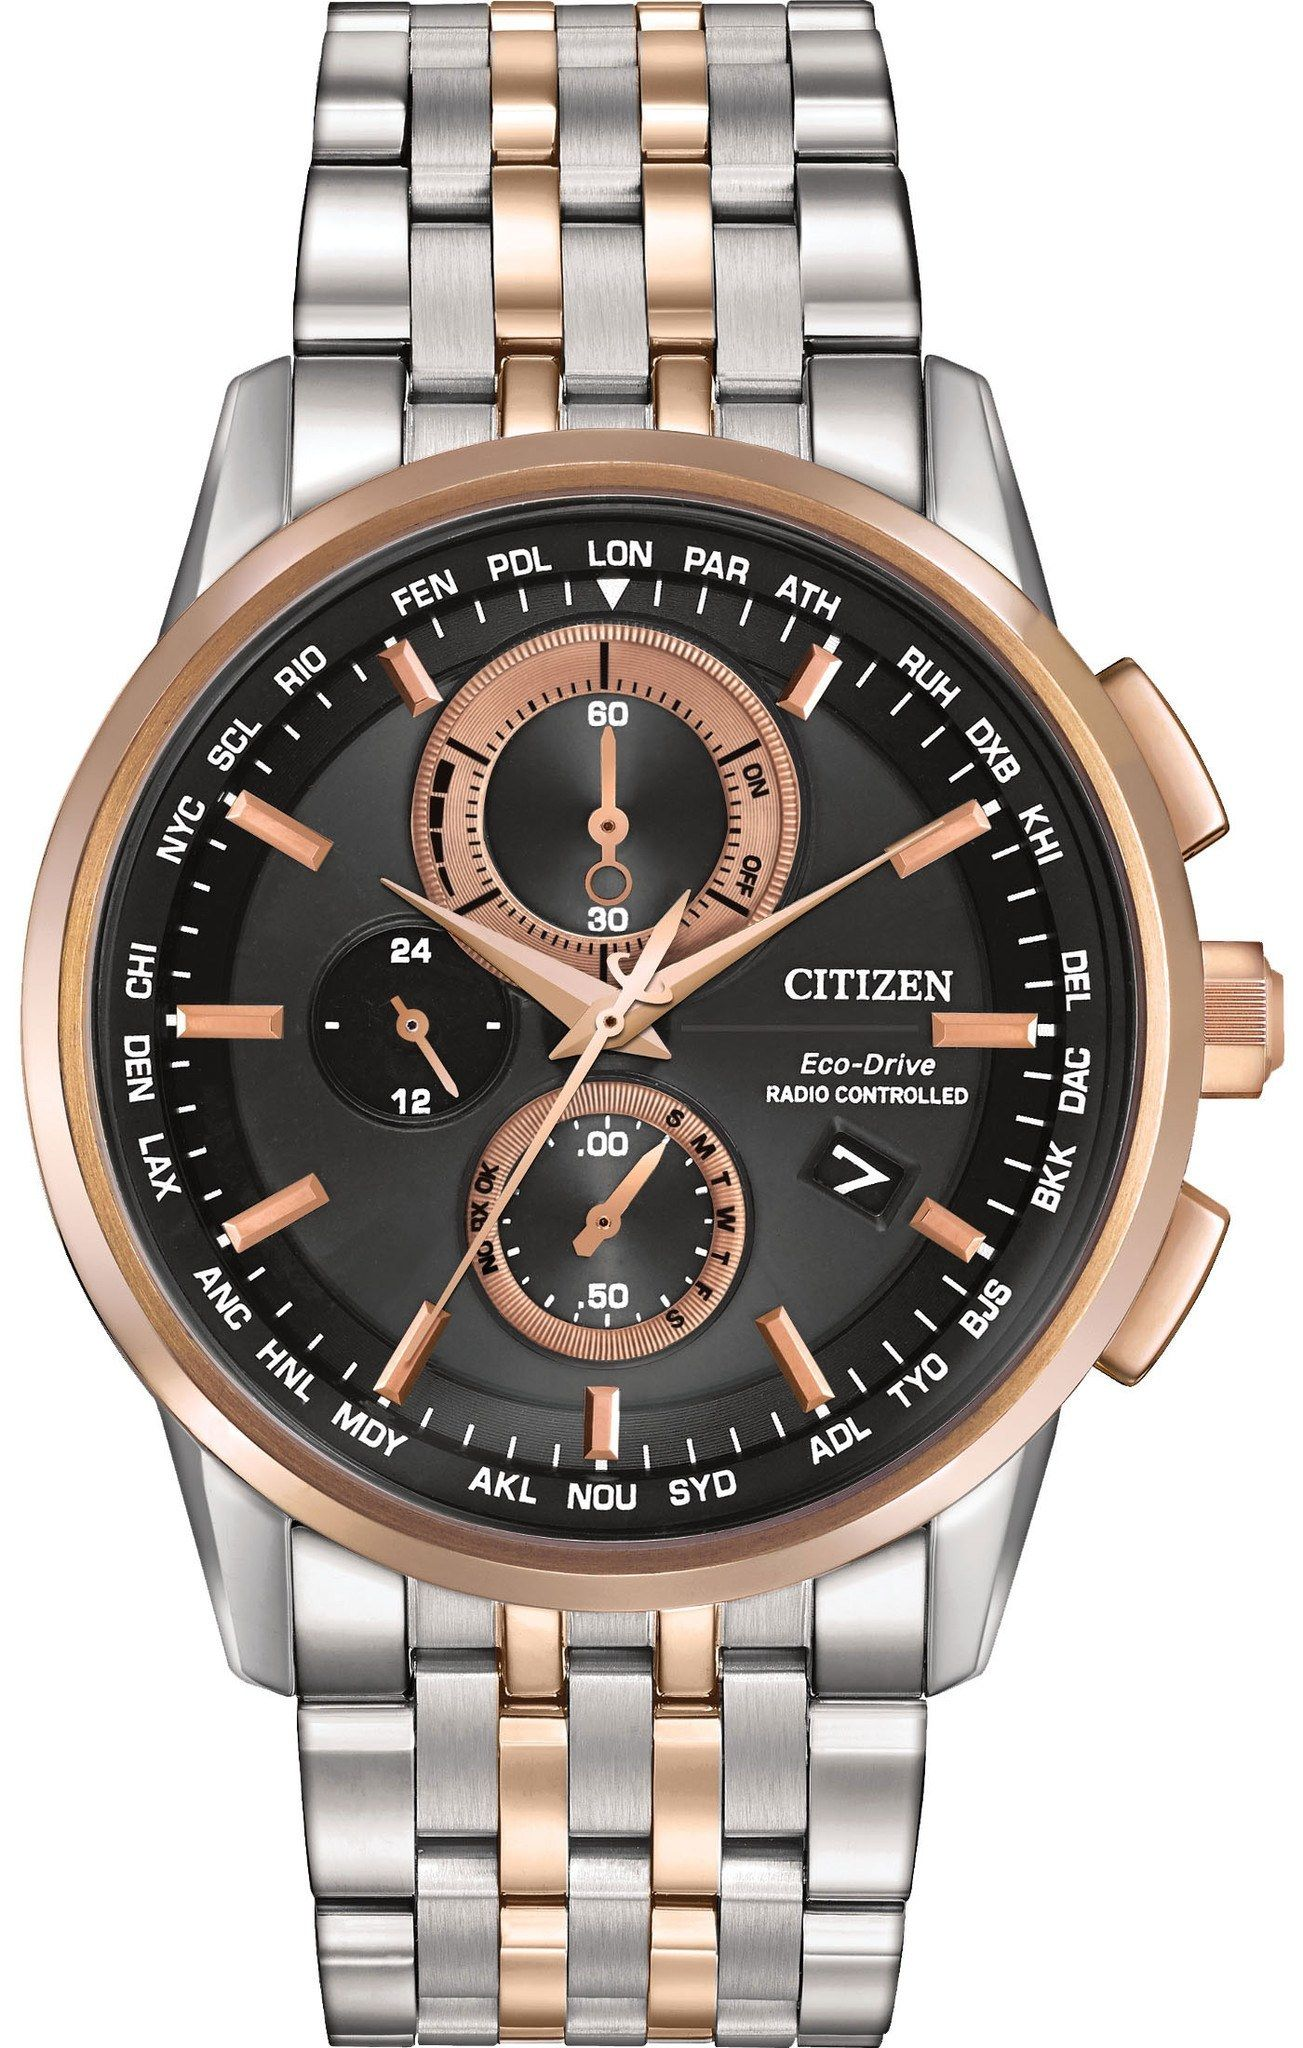 b8f9d948c93 Citizen Eco-Drive Men s World Chronograph A-T Watch. This Eco-Drive watch  is powered by light